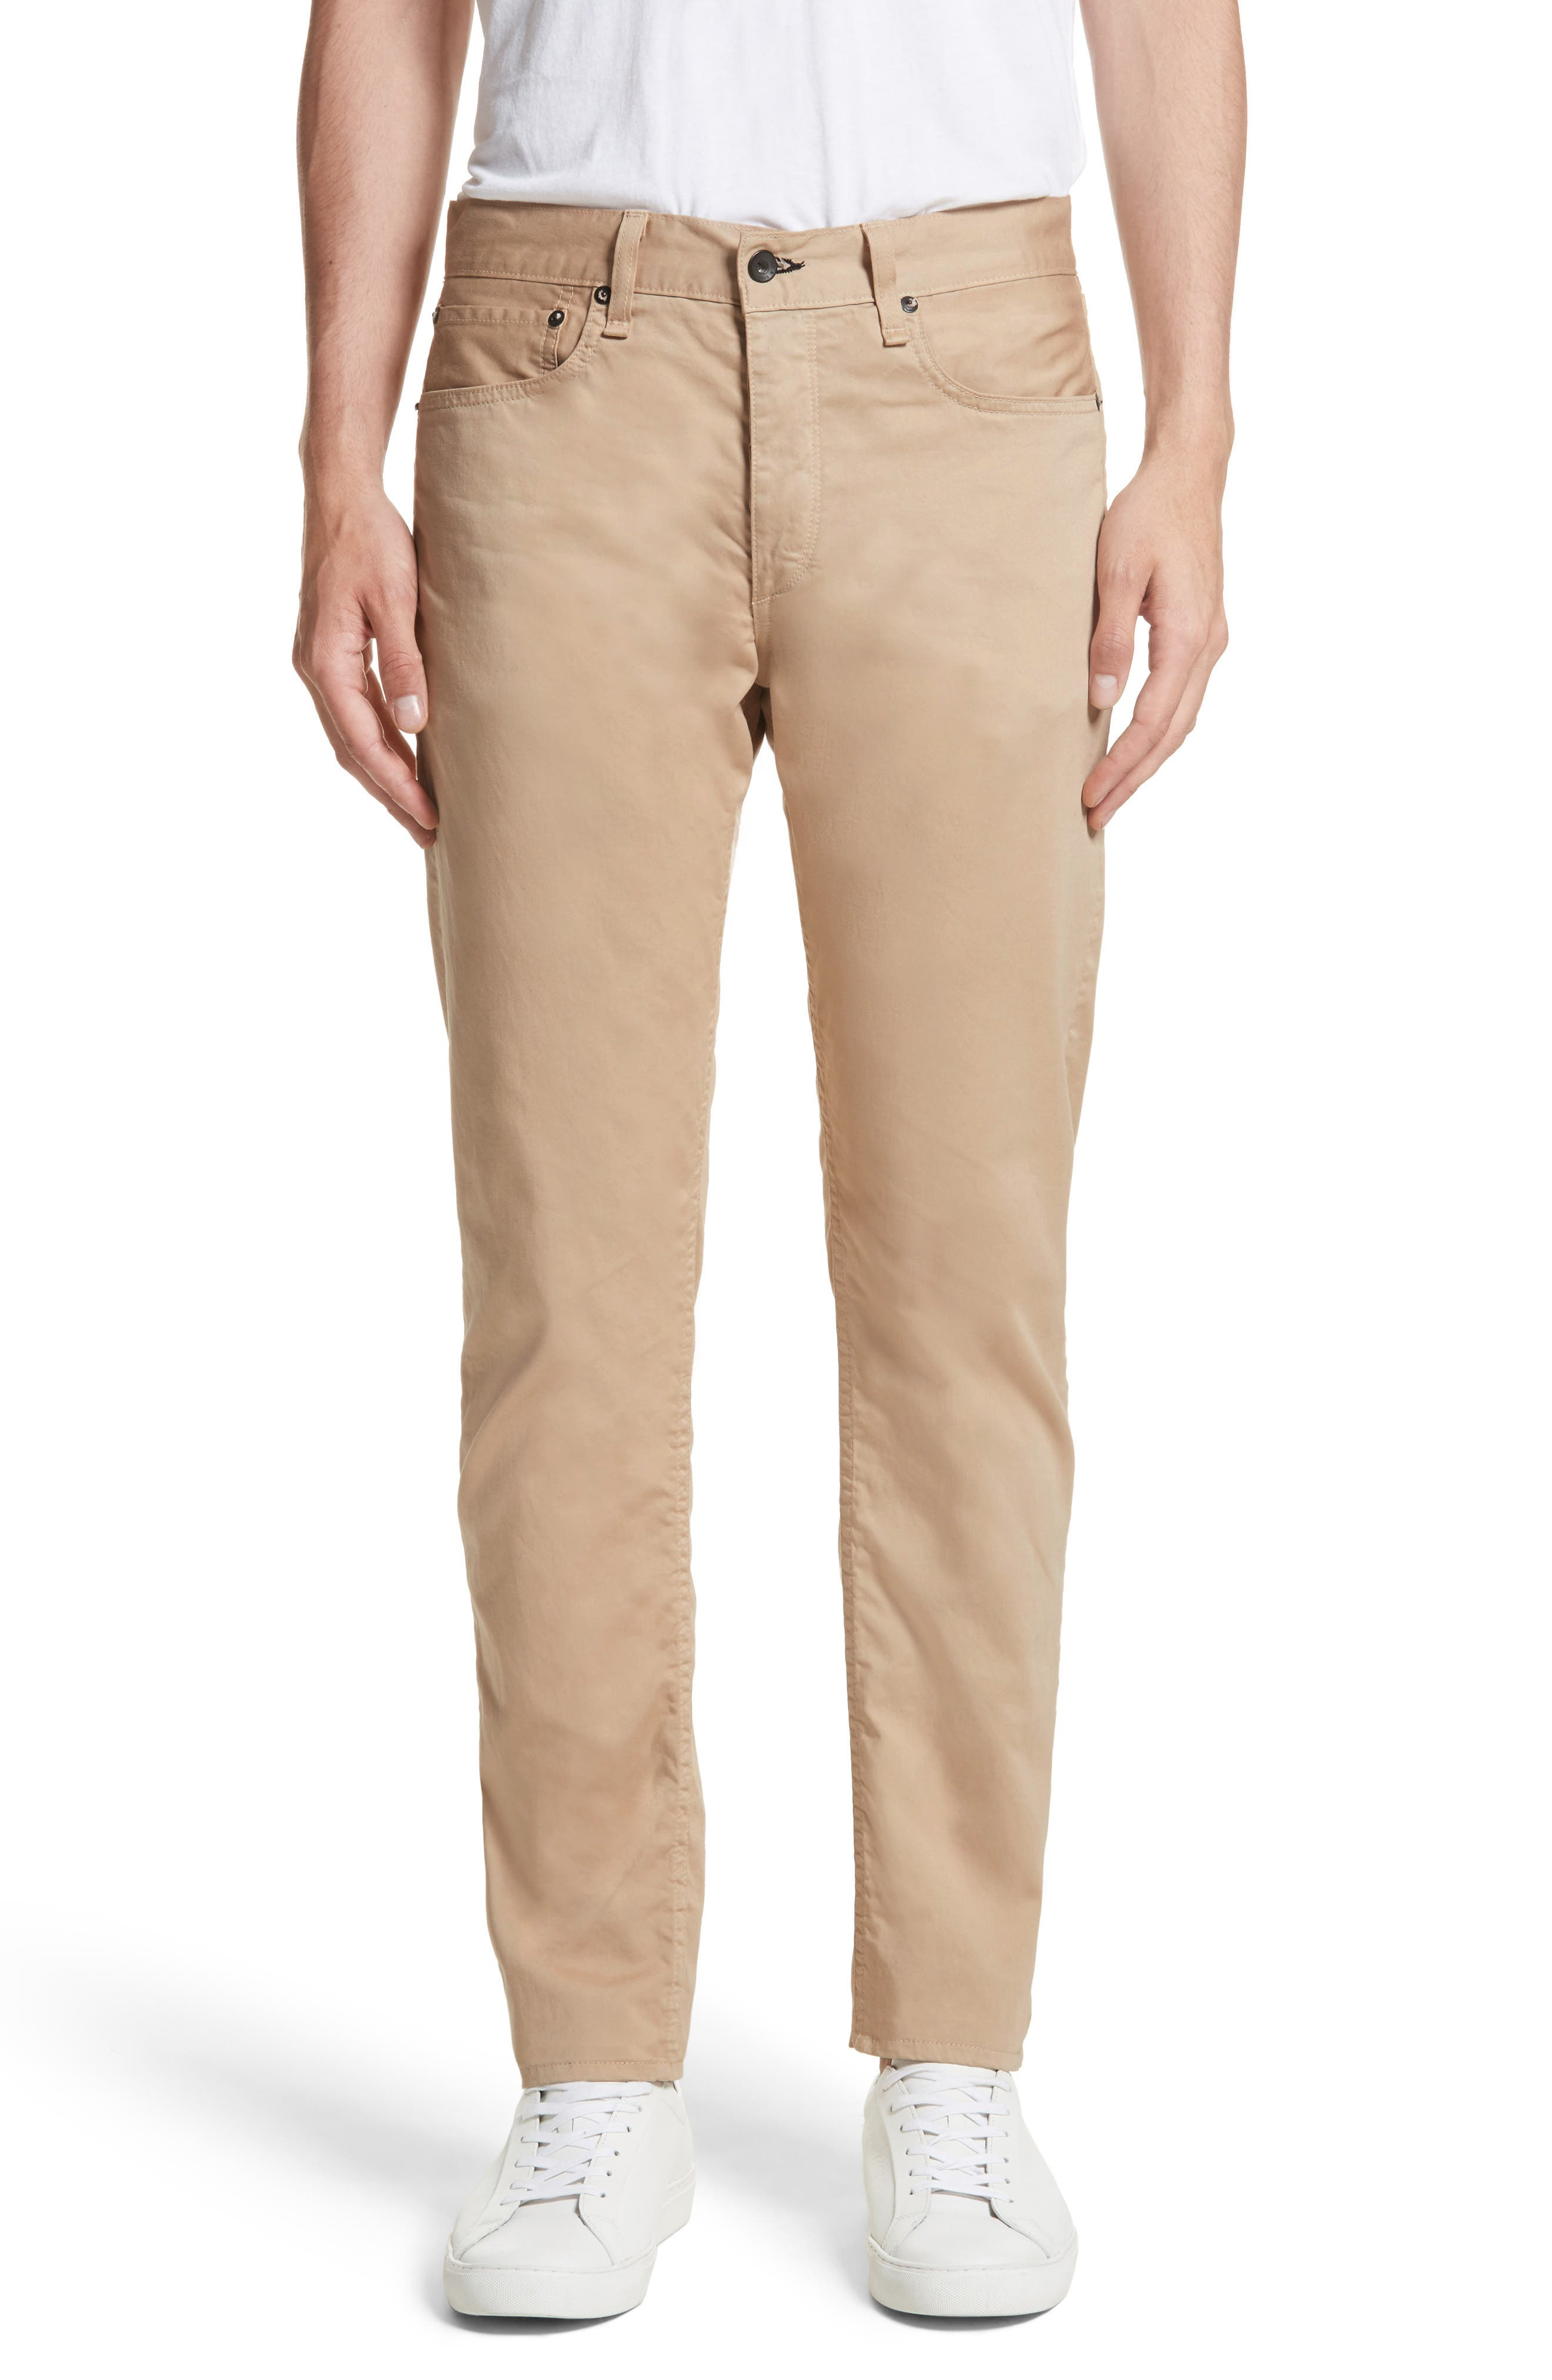 Fit 2 Five-Pocket Twill Pants,                             Main thumbnail 1, color,                             Beige